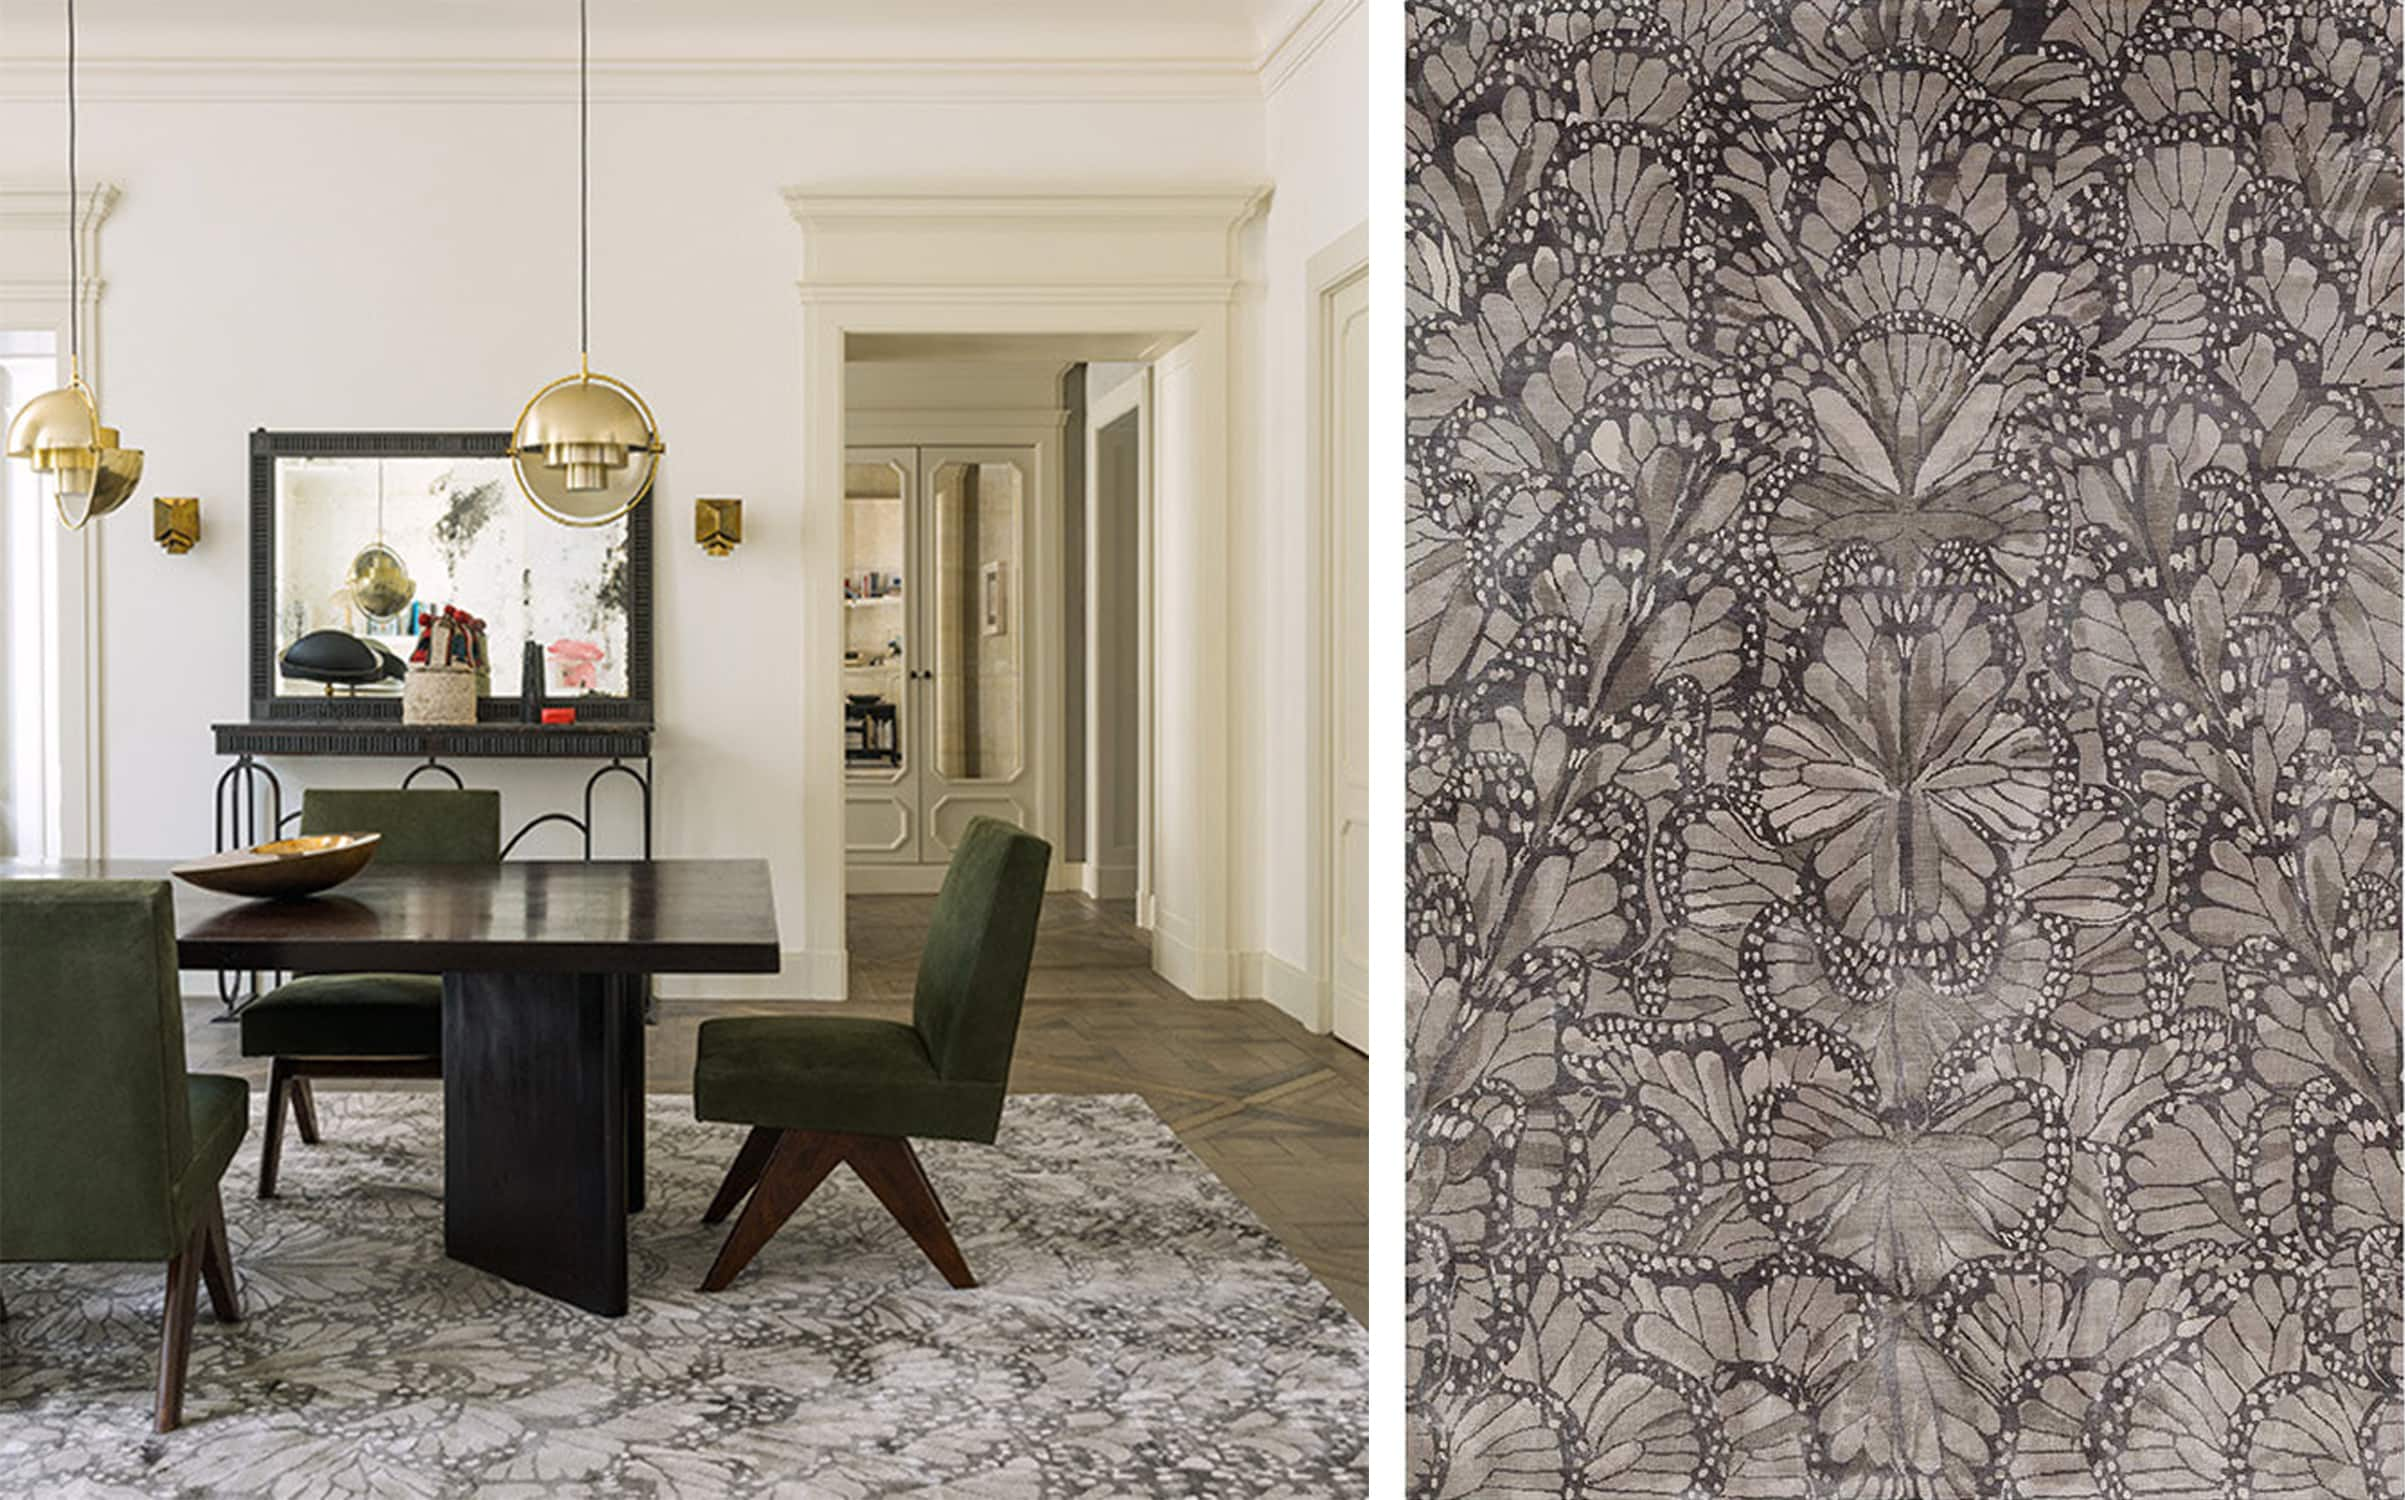 the rug company's stunning monarch smoke rug is a patterned area rug that can really complete a room - darci hether new york